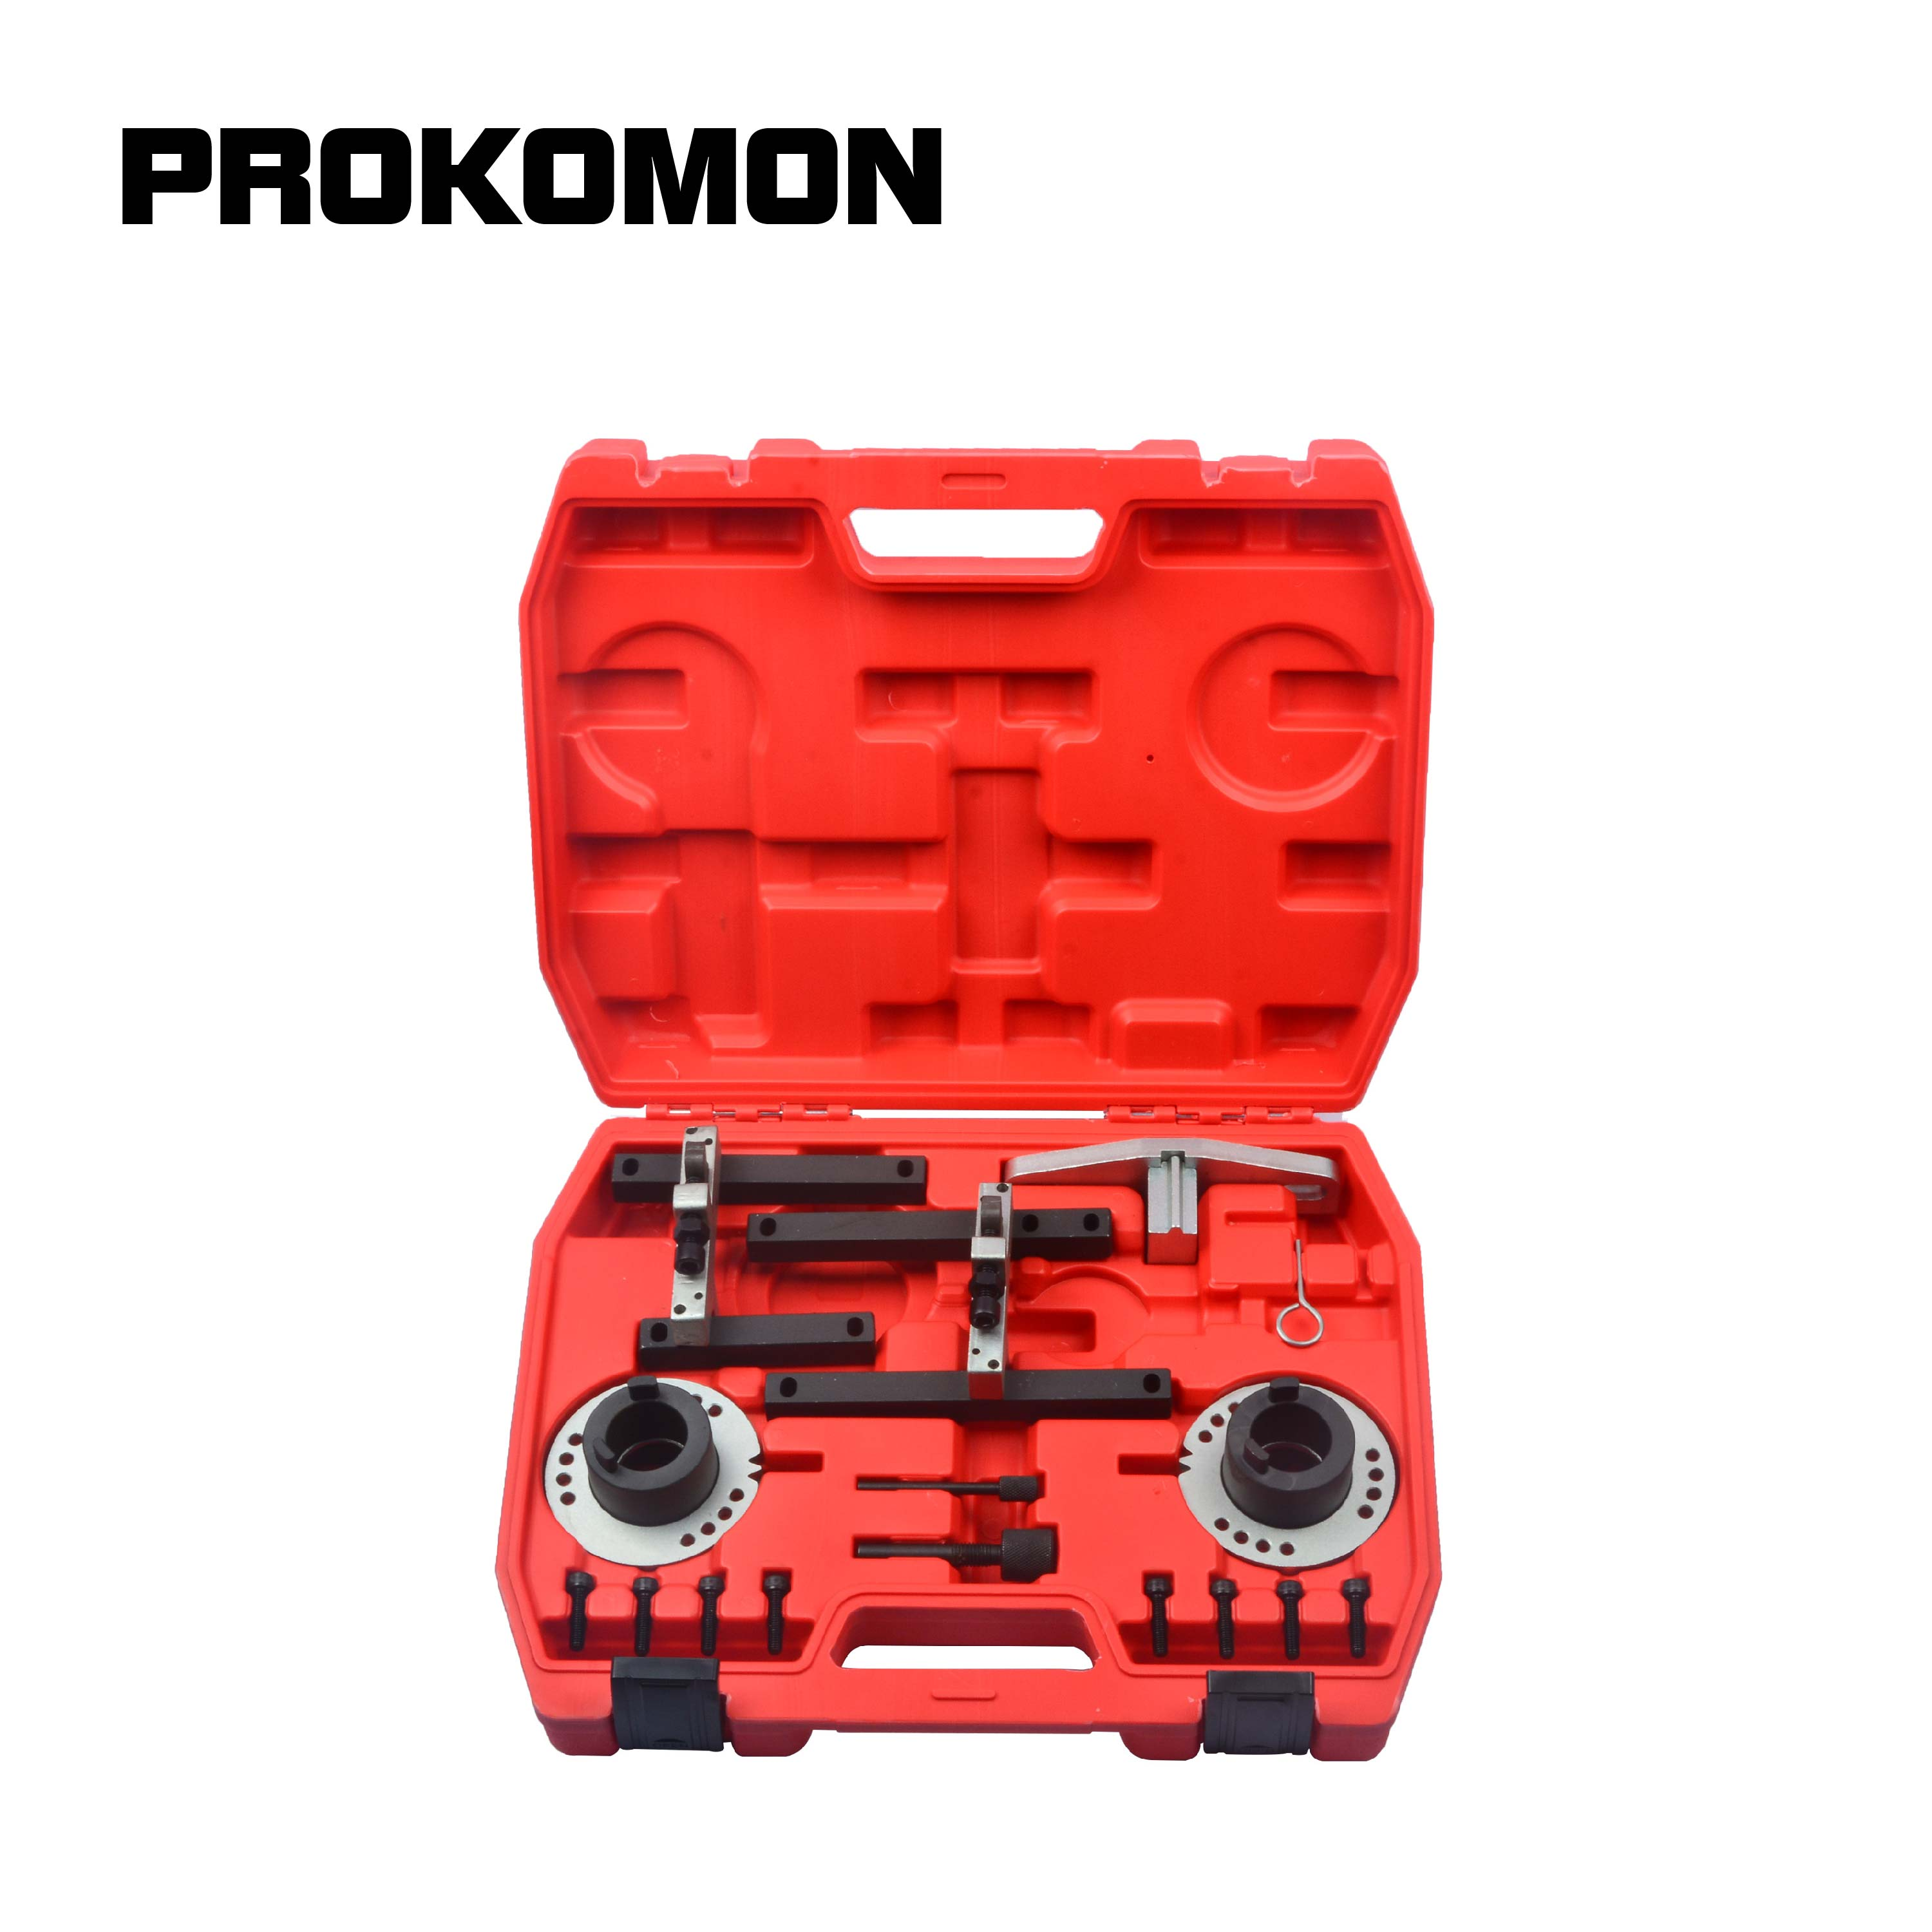 Petrol Engine Timing Tool Set For Ford 1.0 EcoBoost 1.0 SCTi Focus Fiesta B & C Max